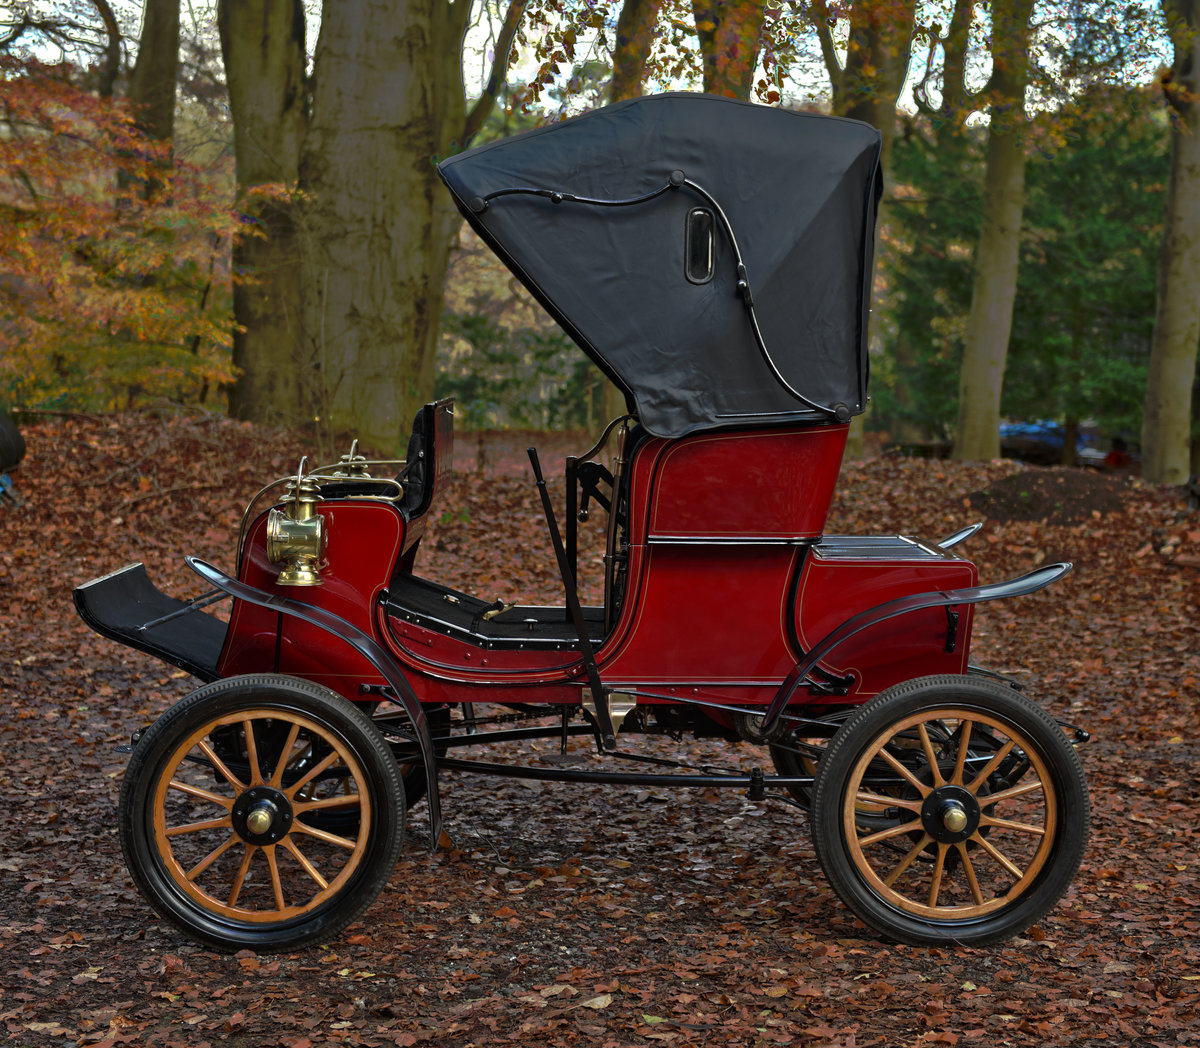 1903 STEVENS-DURYEA 7hp MODEL L RUNABOUT For Sale (picture 4 of 12)